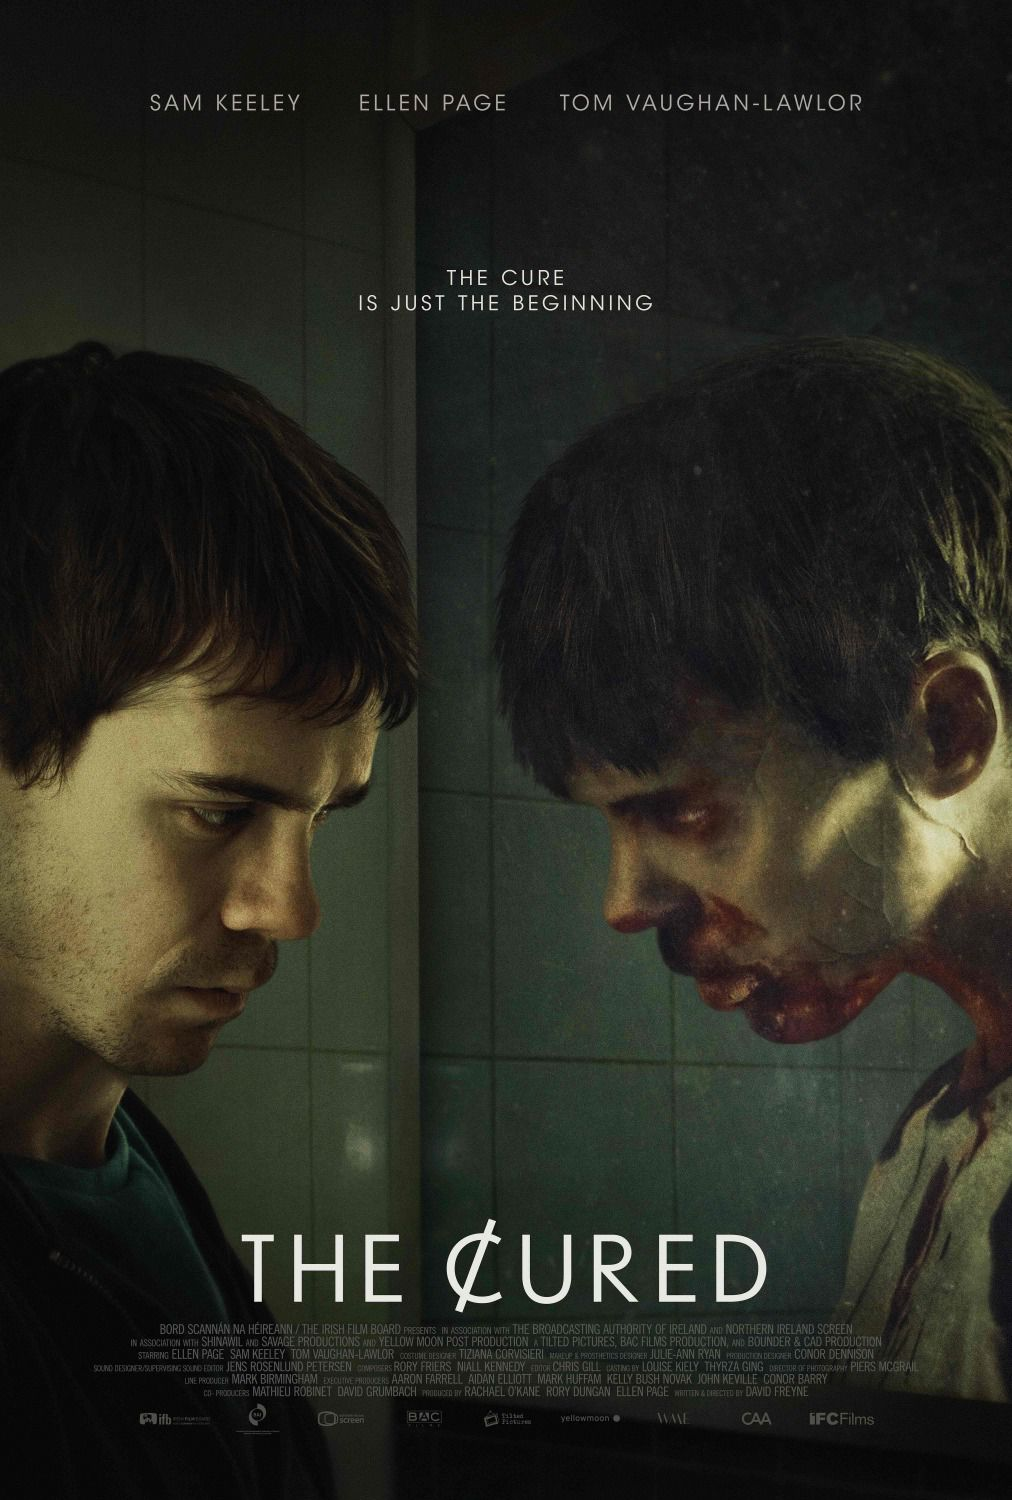 Cured - Sam Keeley, Ellen Page, Tom Vaughan Lawlor - film poster